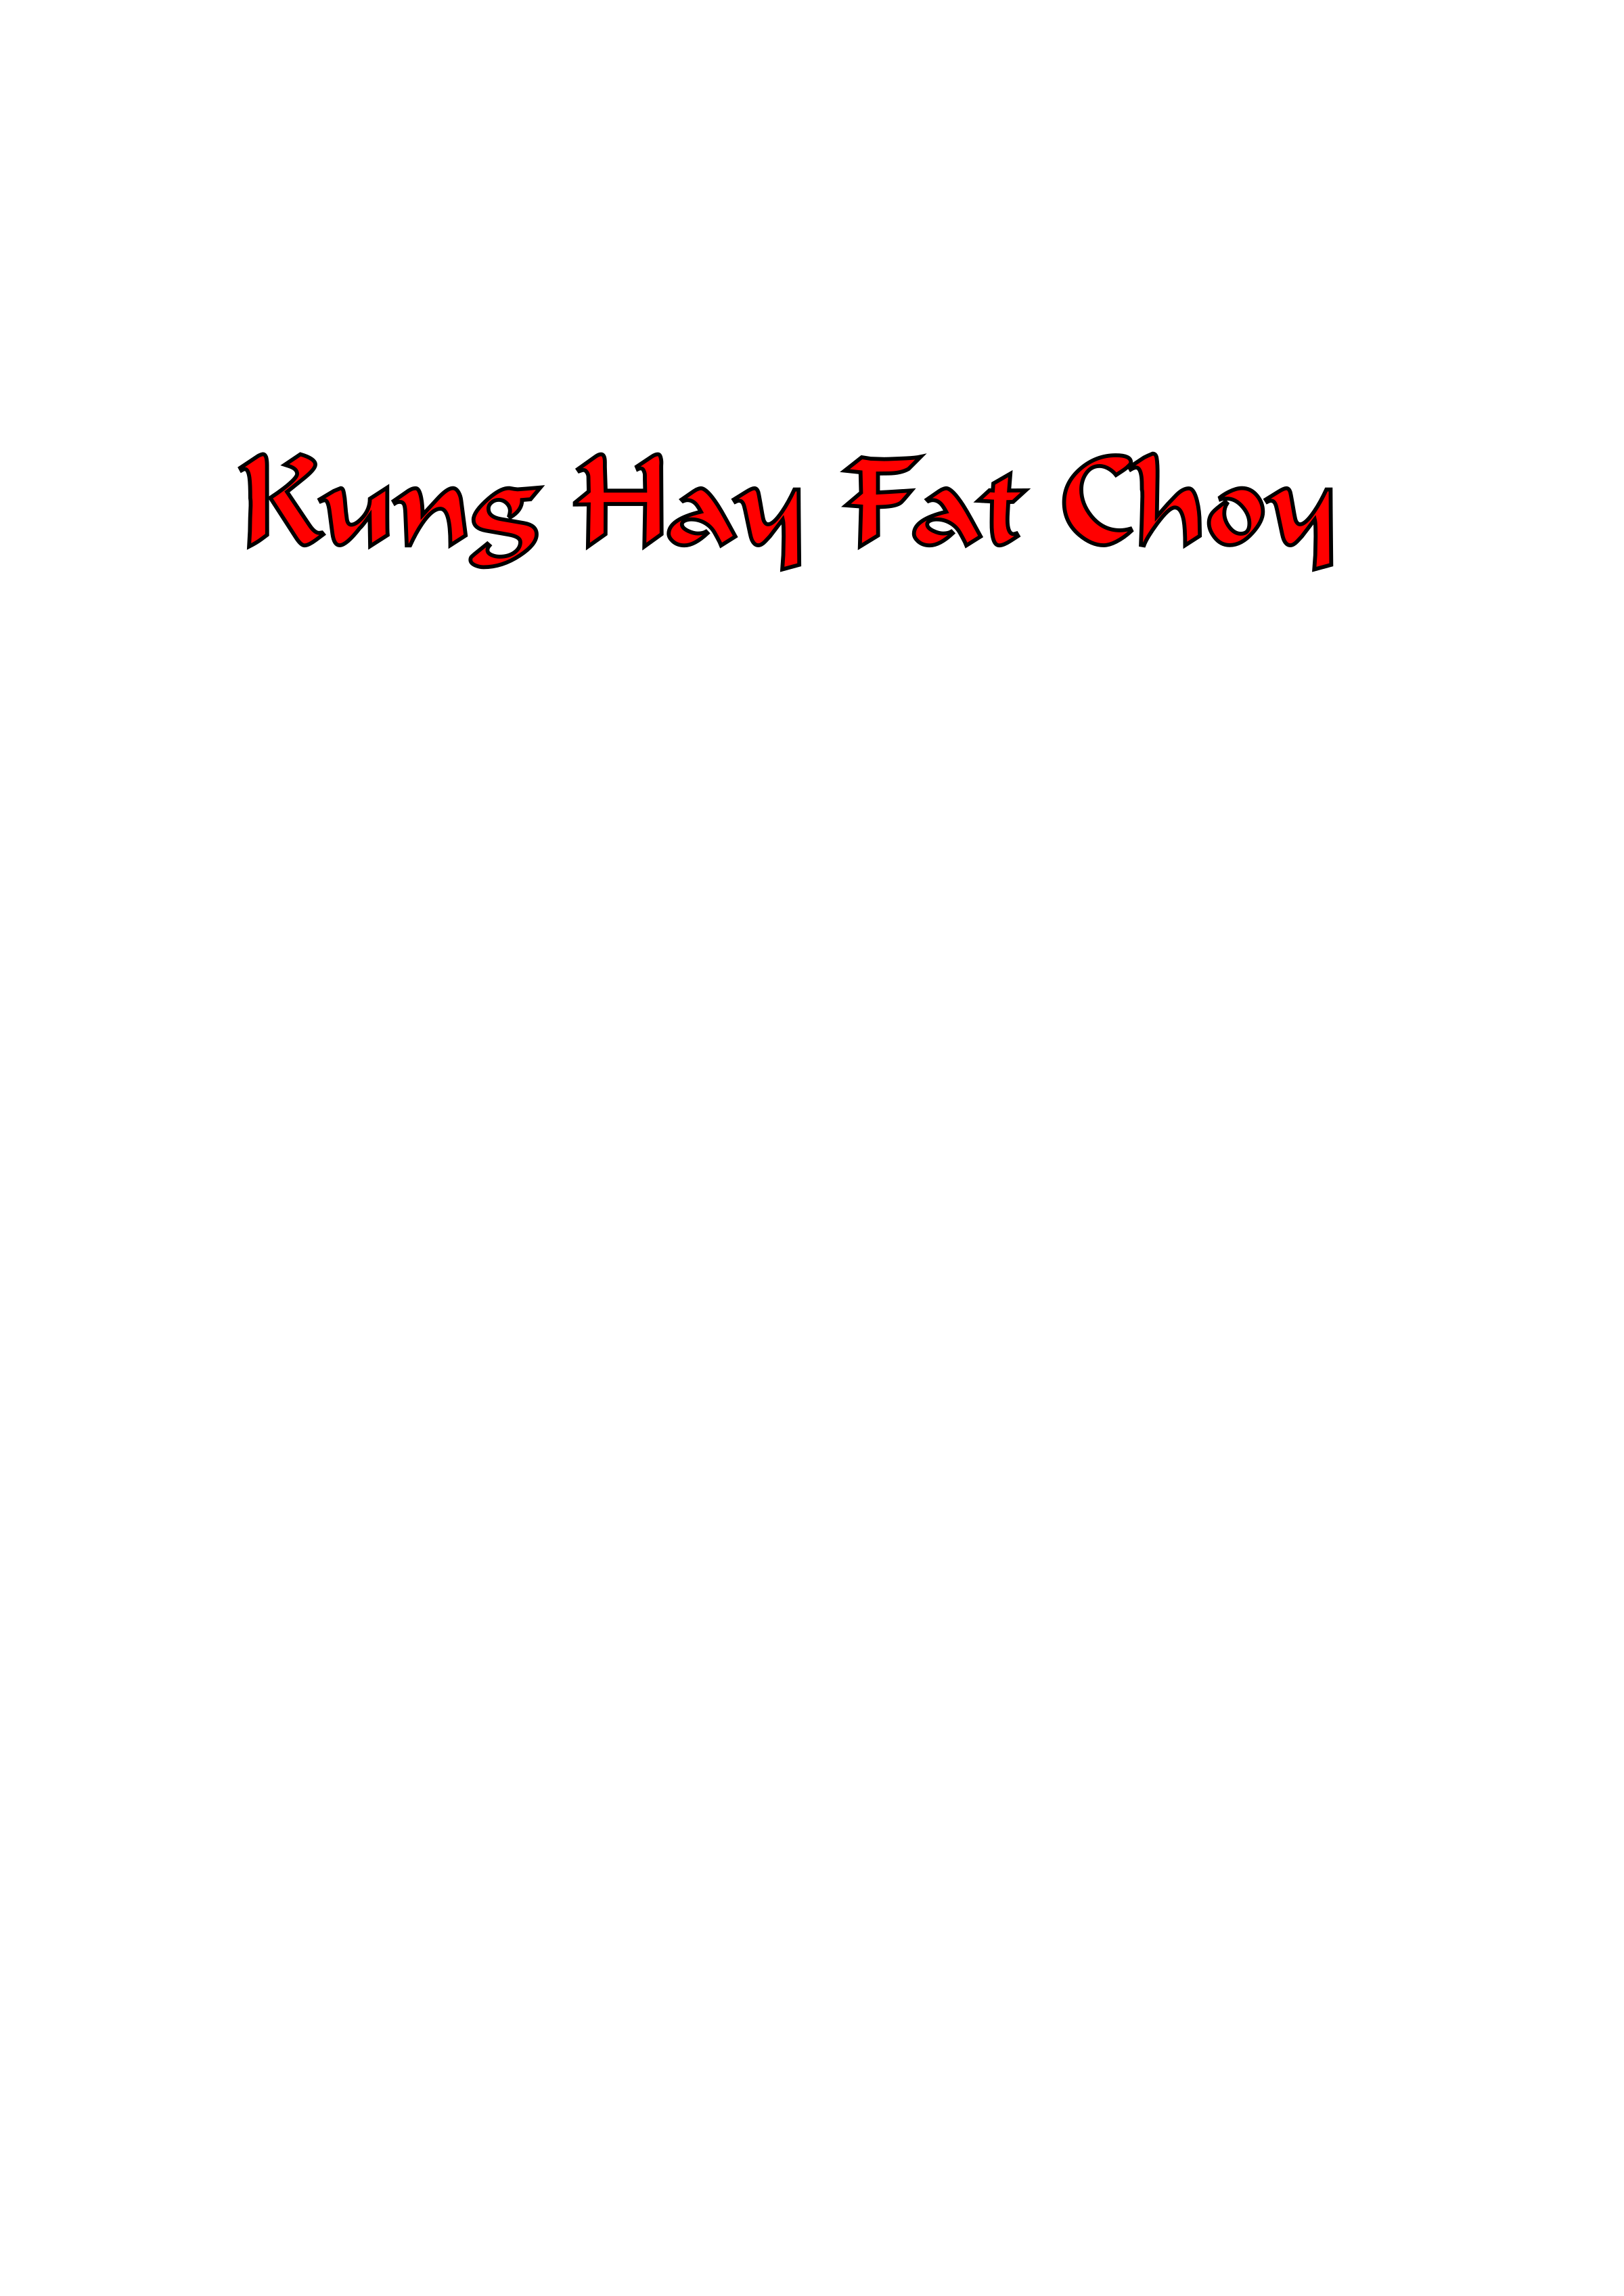 Kung Hay Fat Choy by Cahroozer